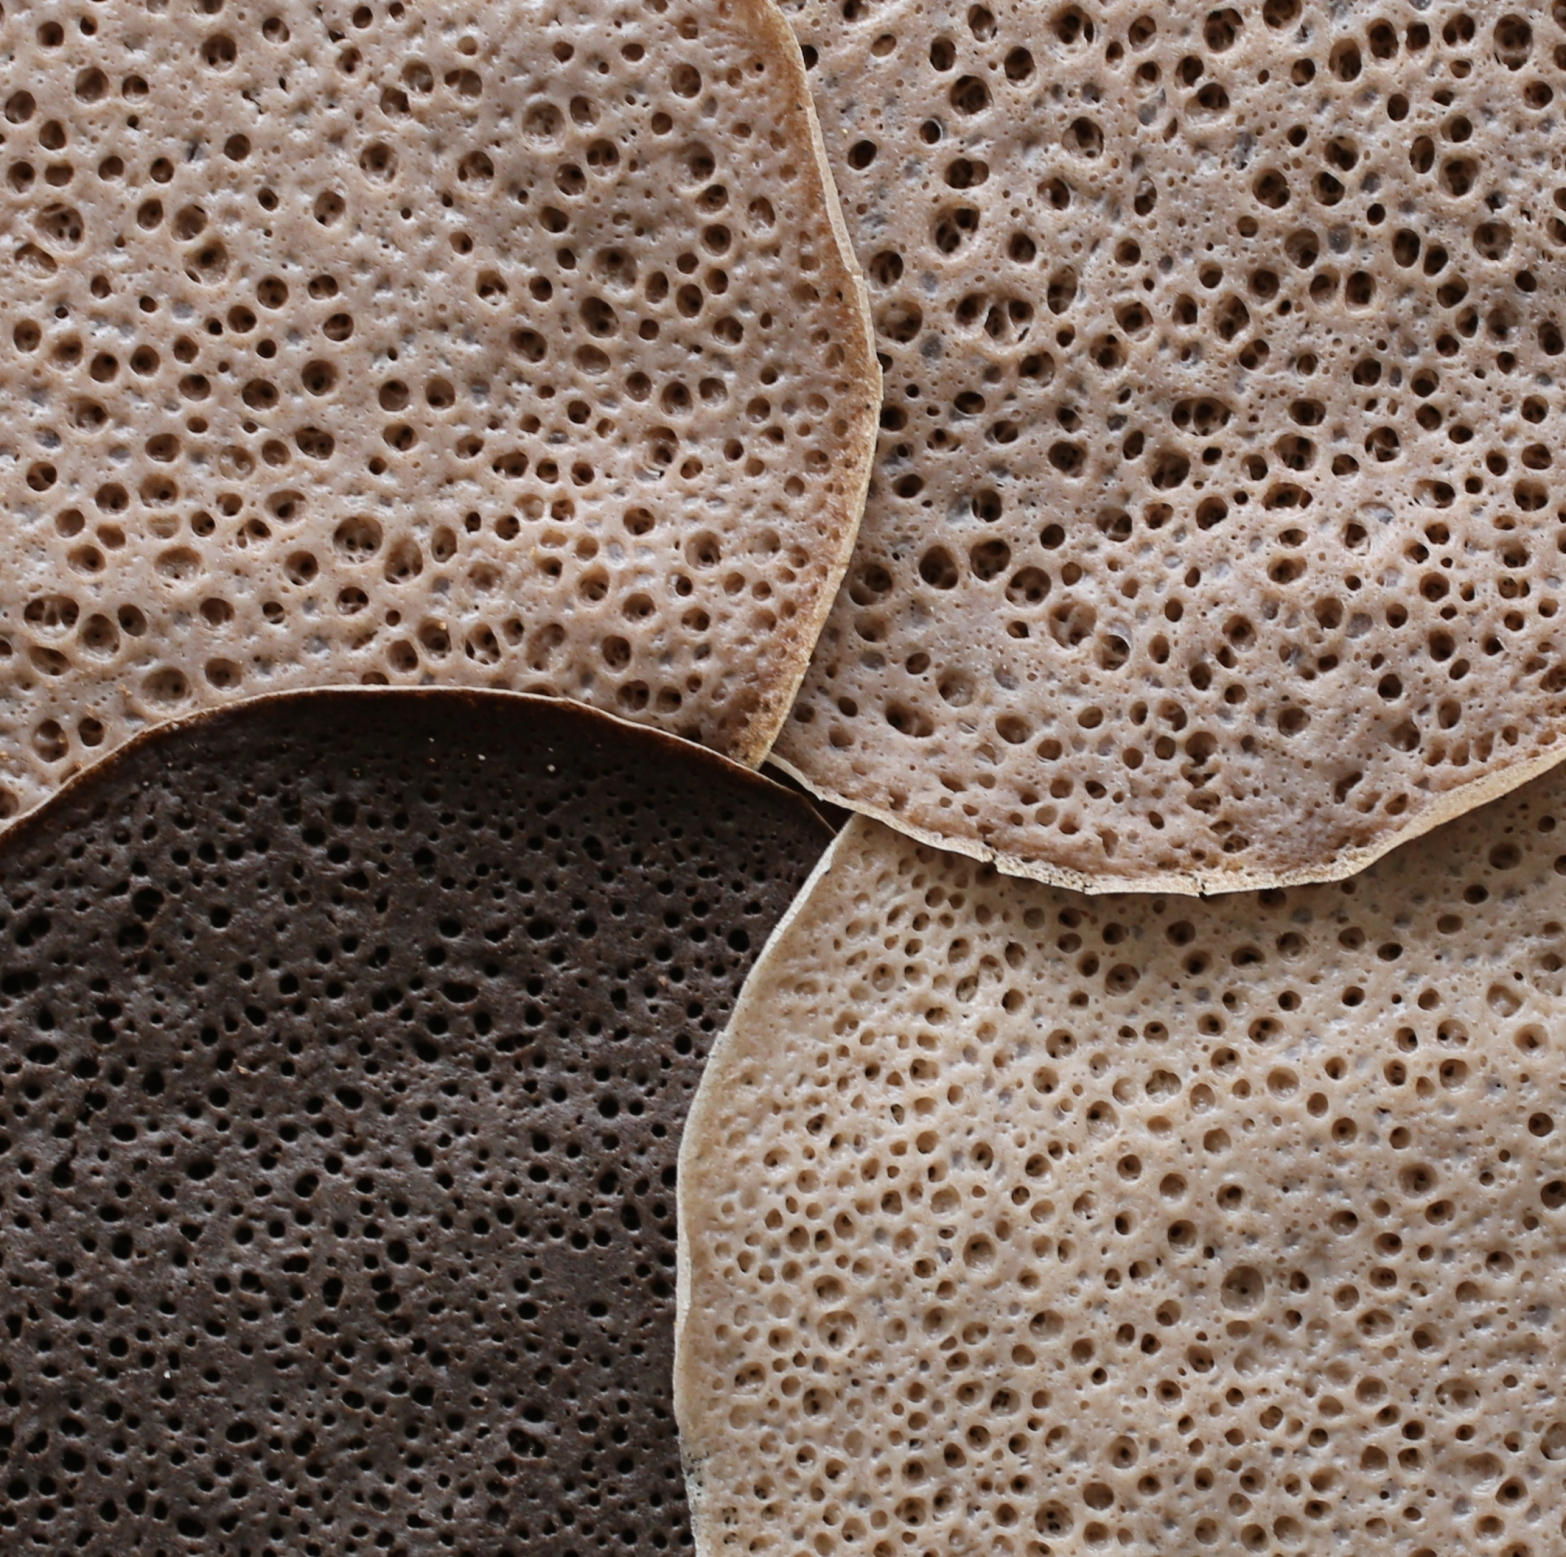 Homemade injera